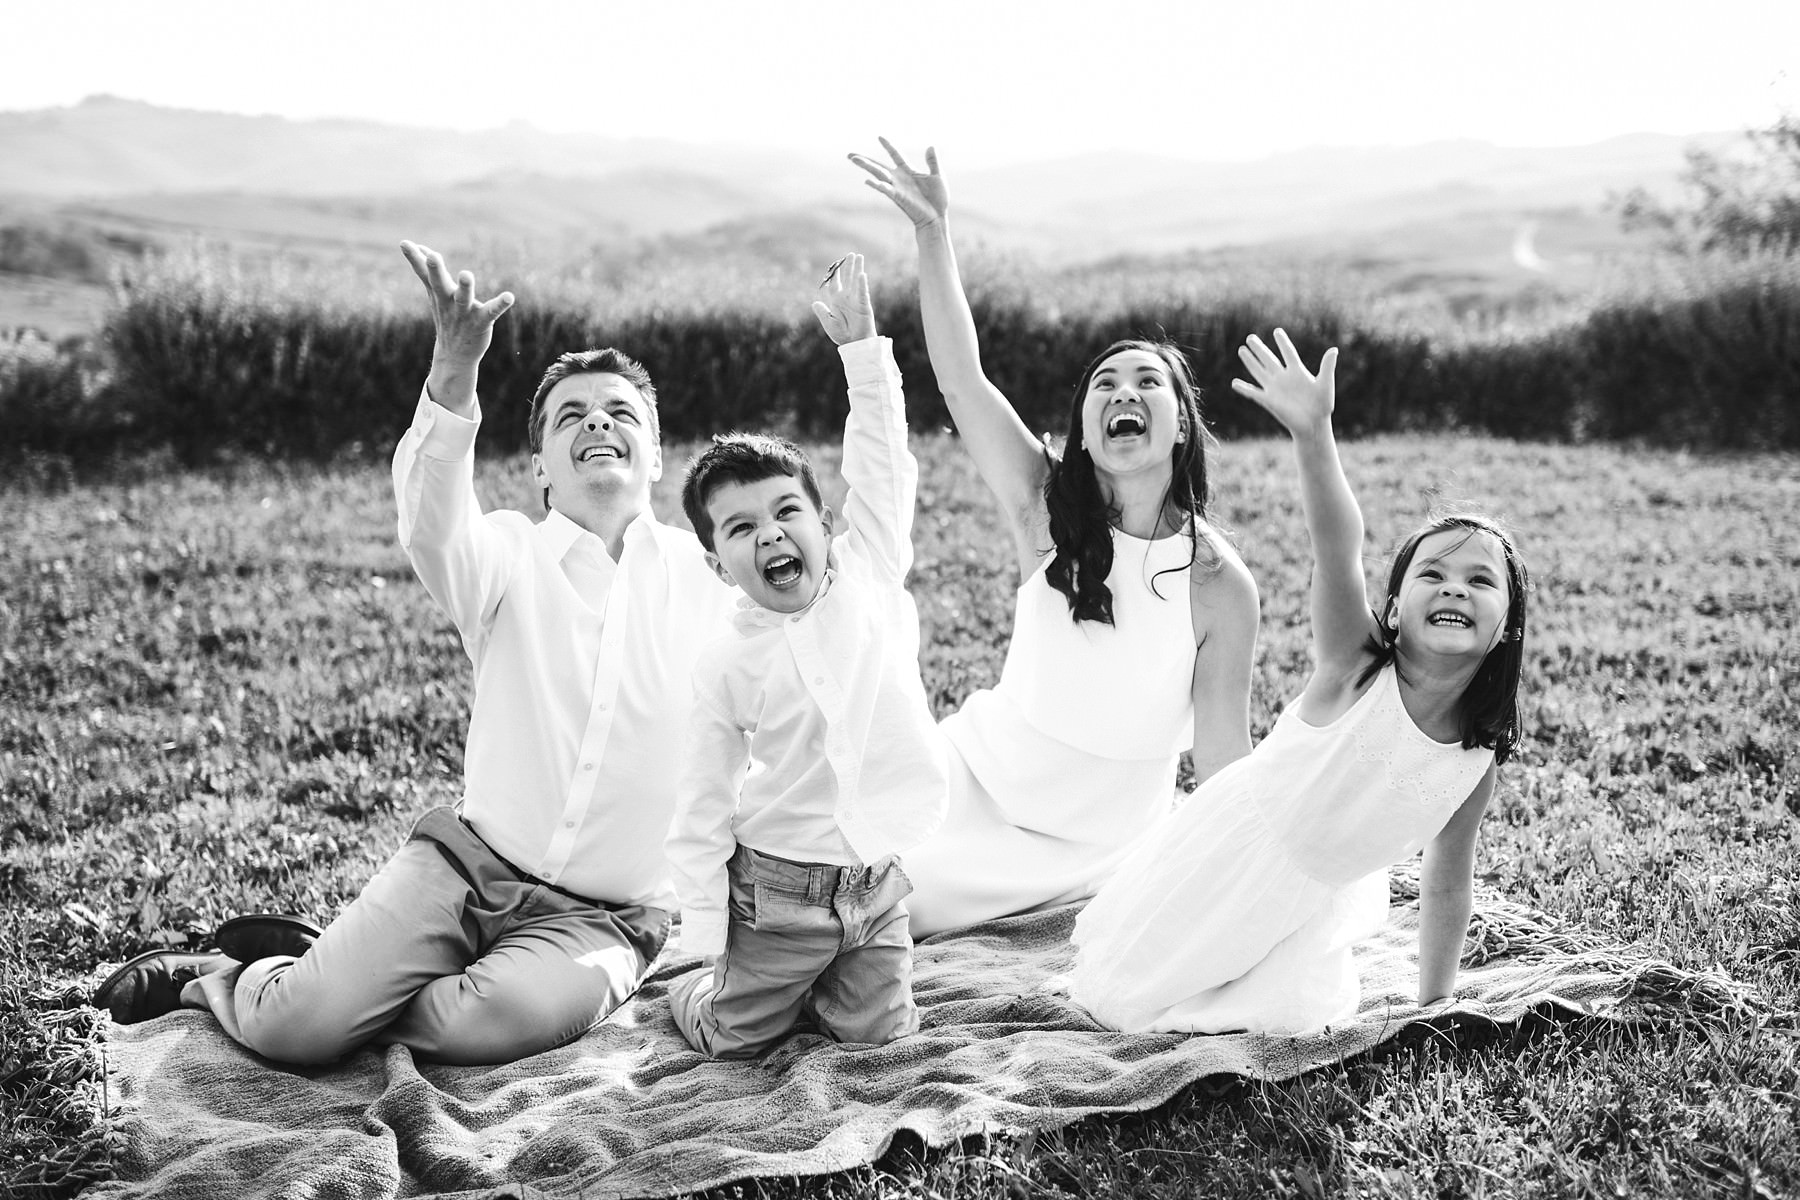 Take a moment and enjoy time with your family. Hire a professional photographer to build your memories during vacation in Italy!